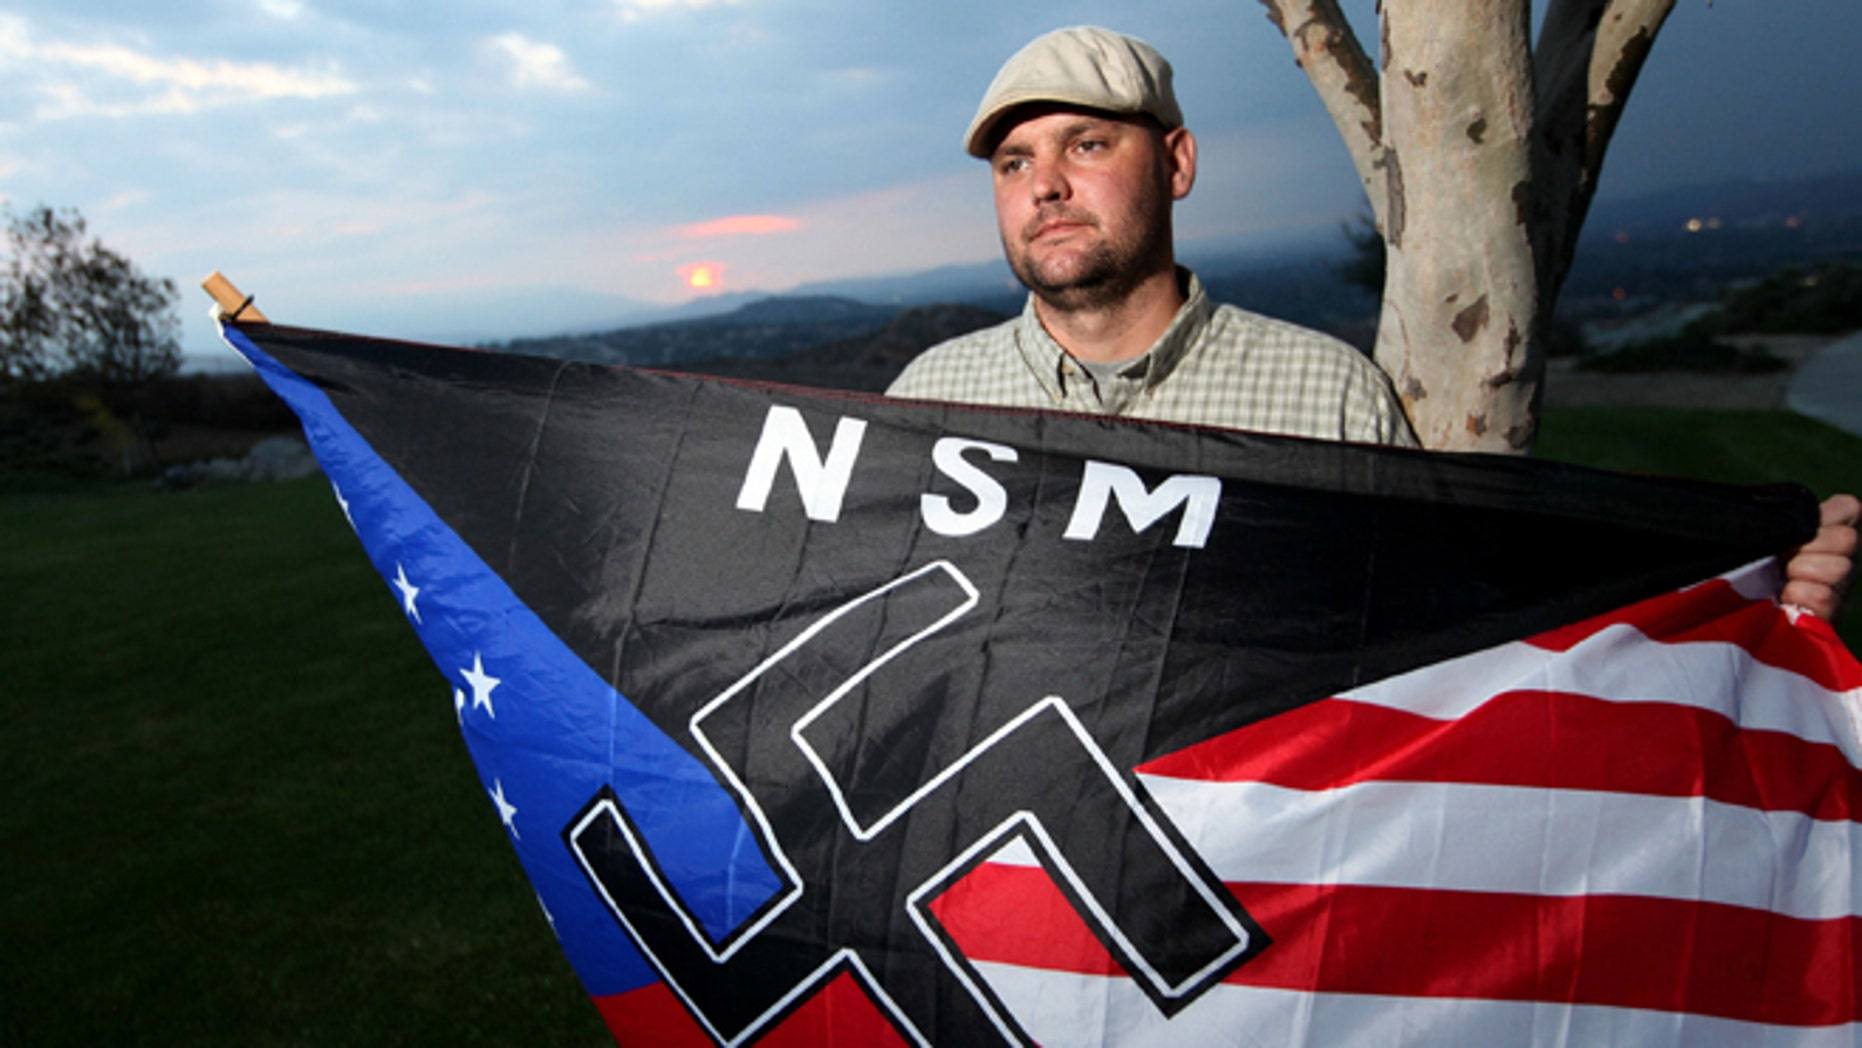 Oct. 22, 2010: Jeff Hall, who was killed by his son, holds a Neo Nazi flag while standing at Sycamore Highlands Park near his home in Riverside, Calif. (AP)